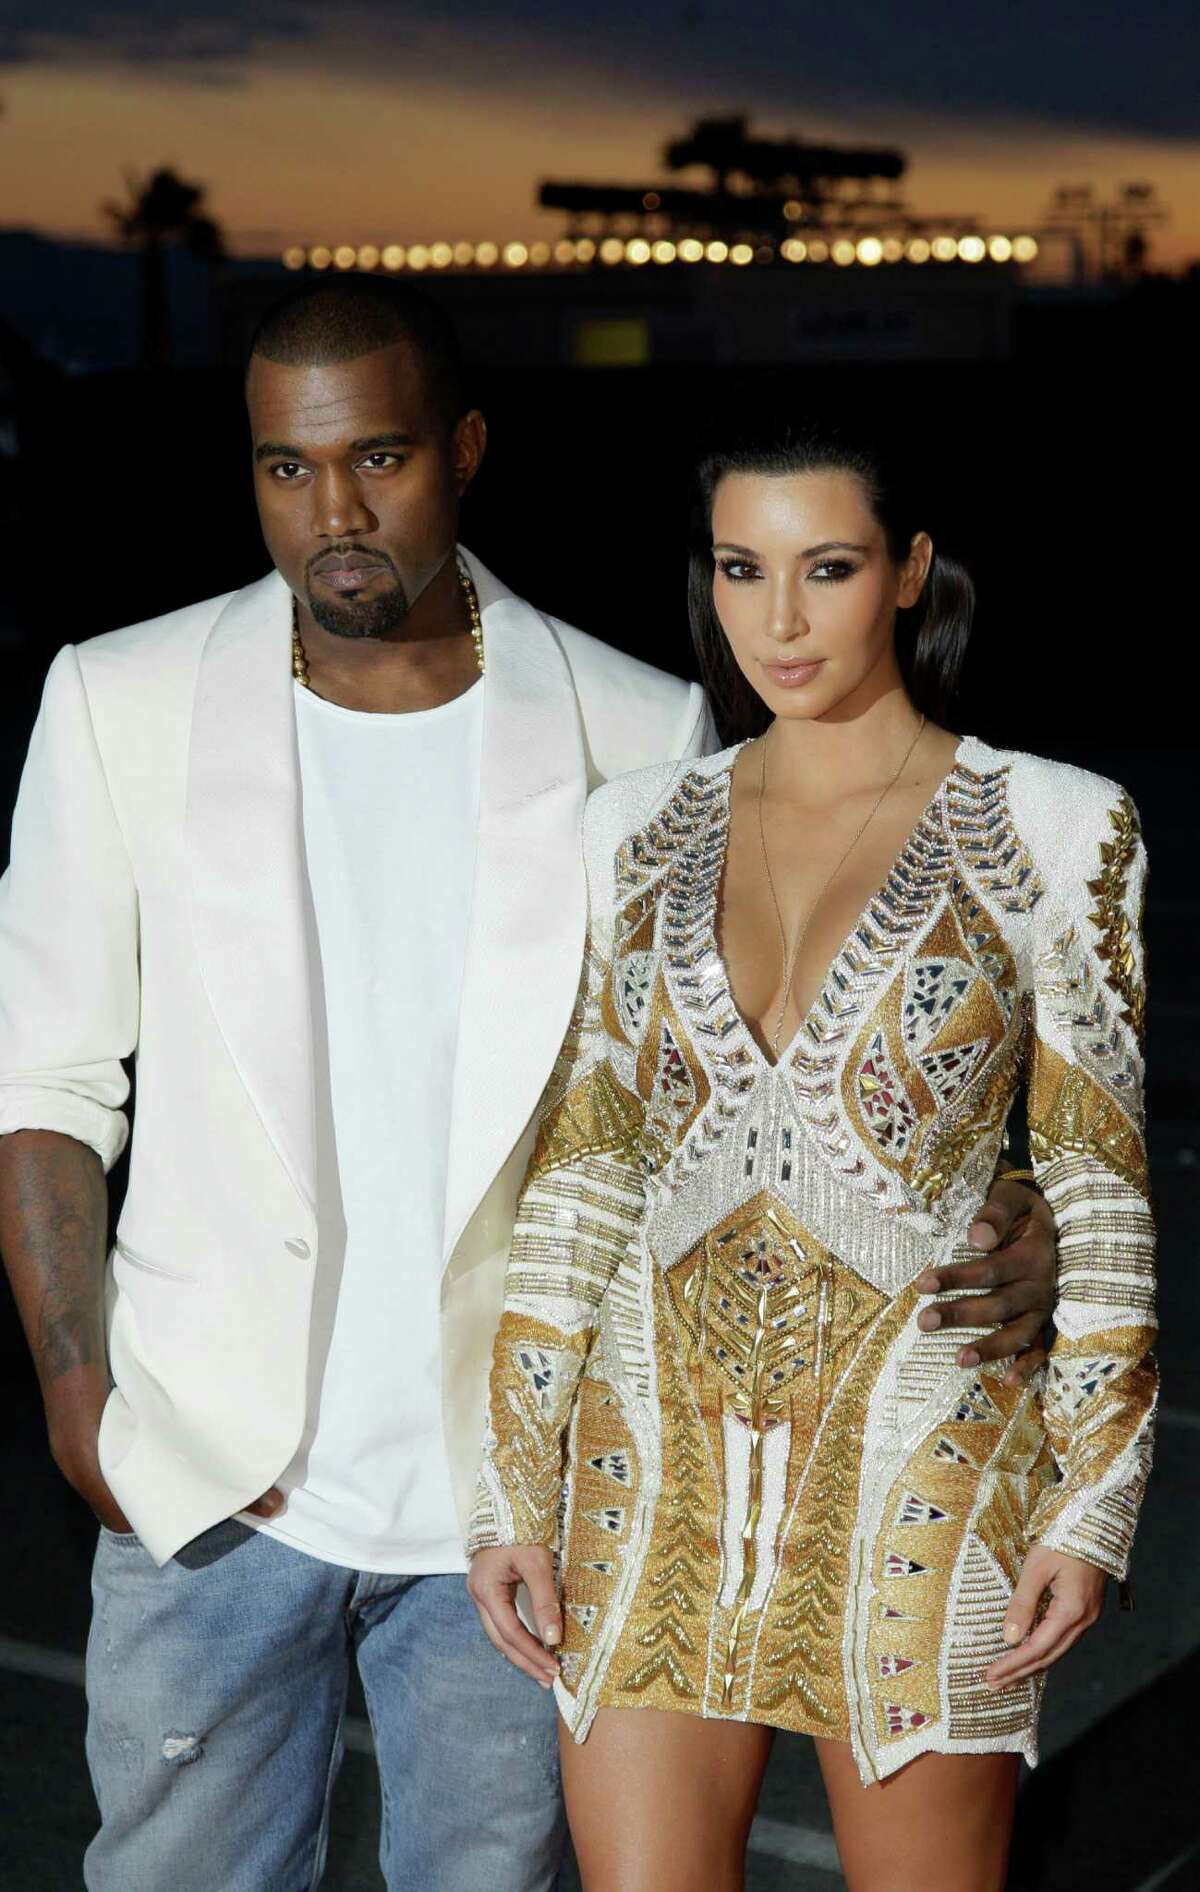 FILE - In this May 23, 2012 file photo, singer Kanye West, left, and television personality Kim Kardashian arrive for the screening of